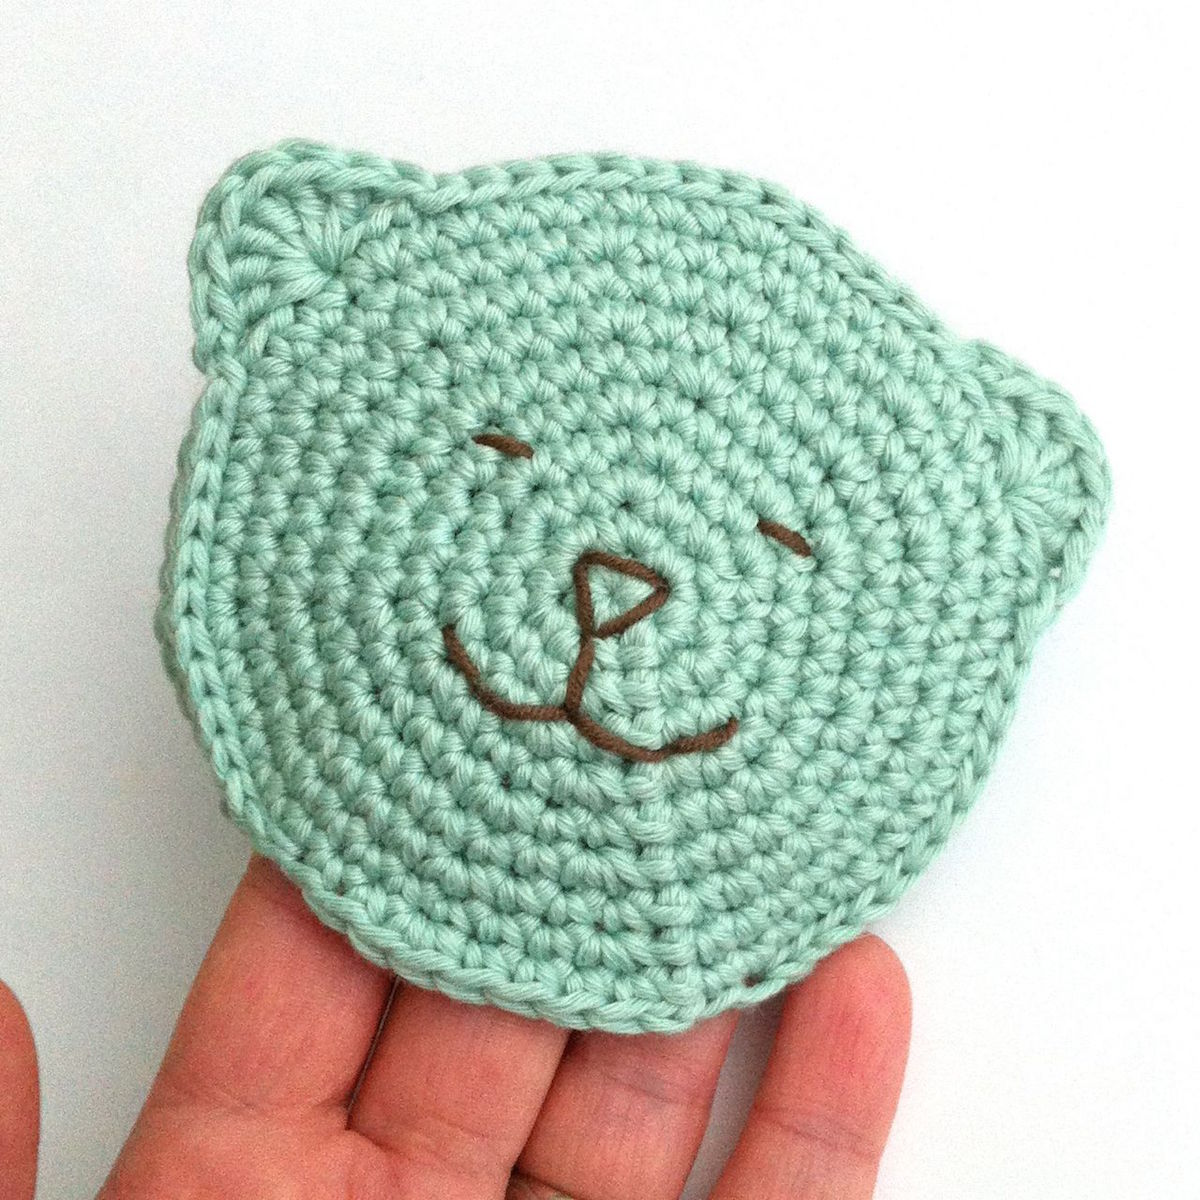 Baby Wash Mitt Crochet Pattern